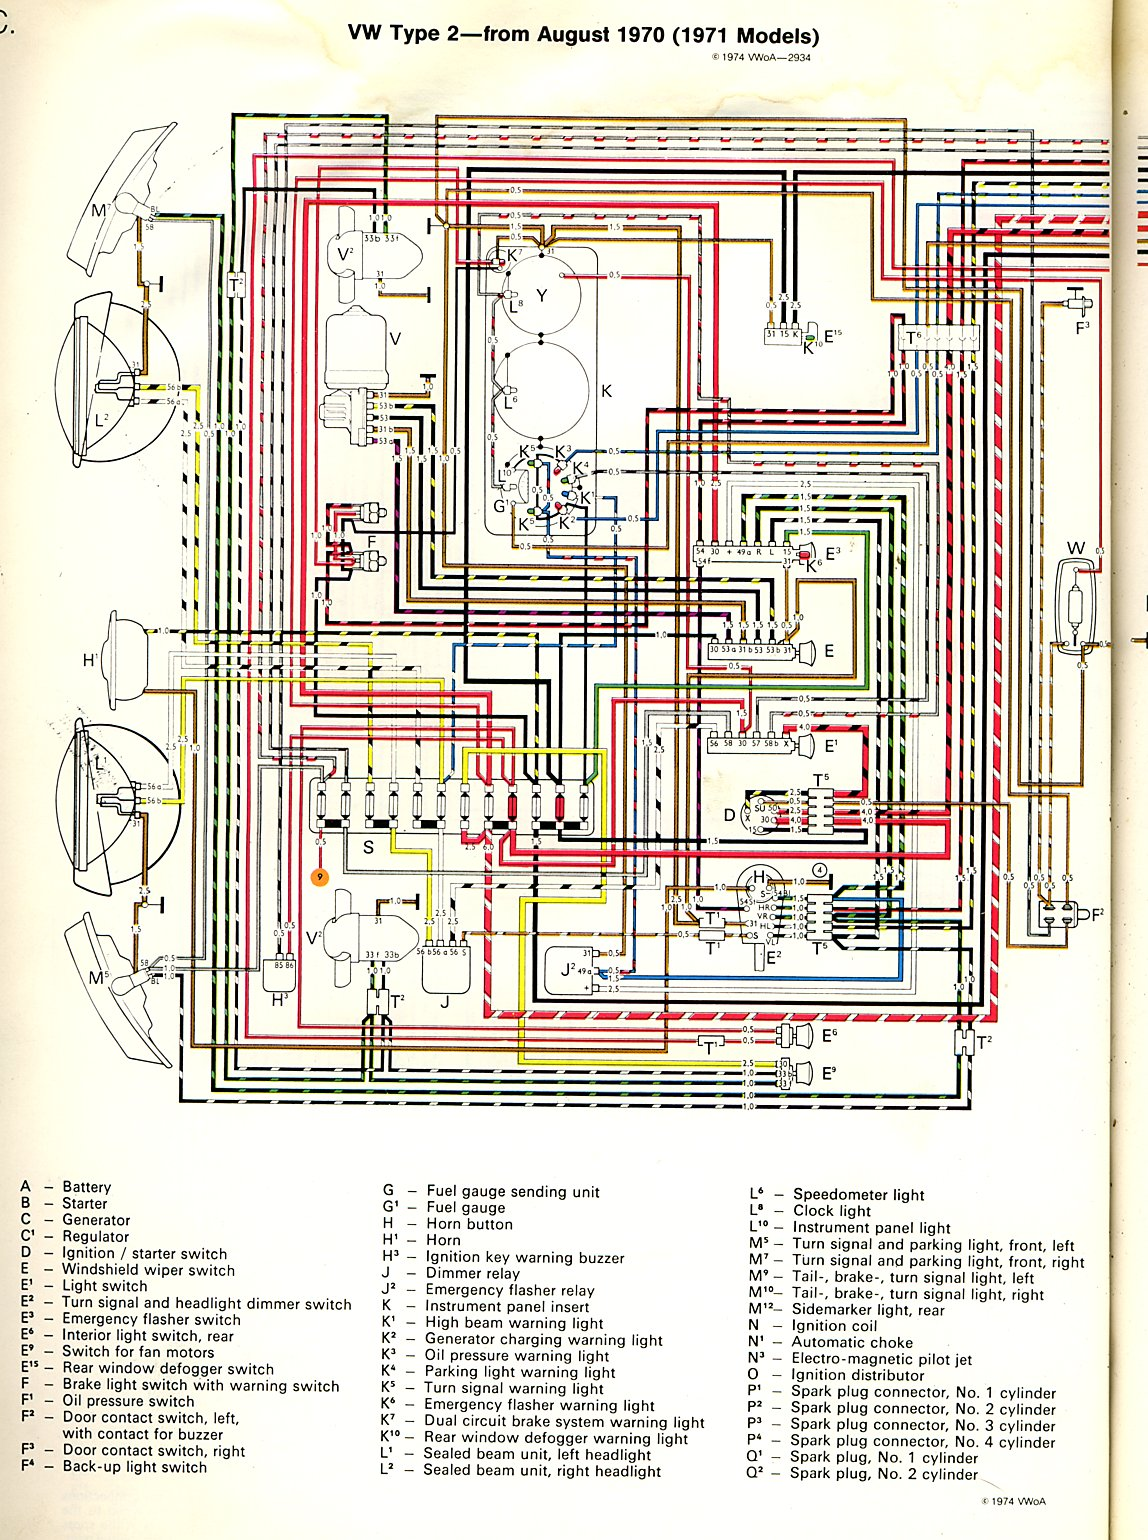 baybus_71a thesamba com type 2 wiring diagrams 1978 vw bus fuse box diagram at mr168.co